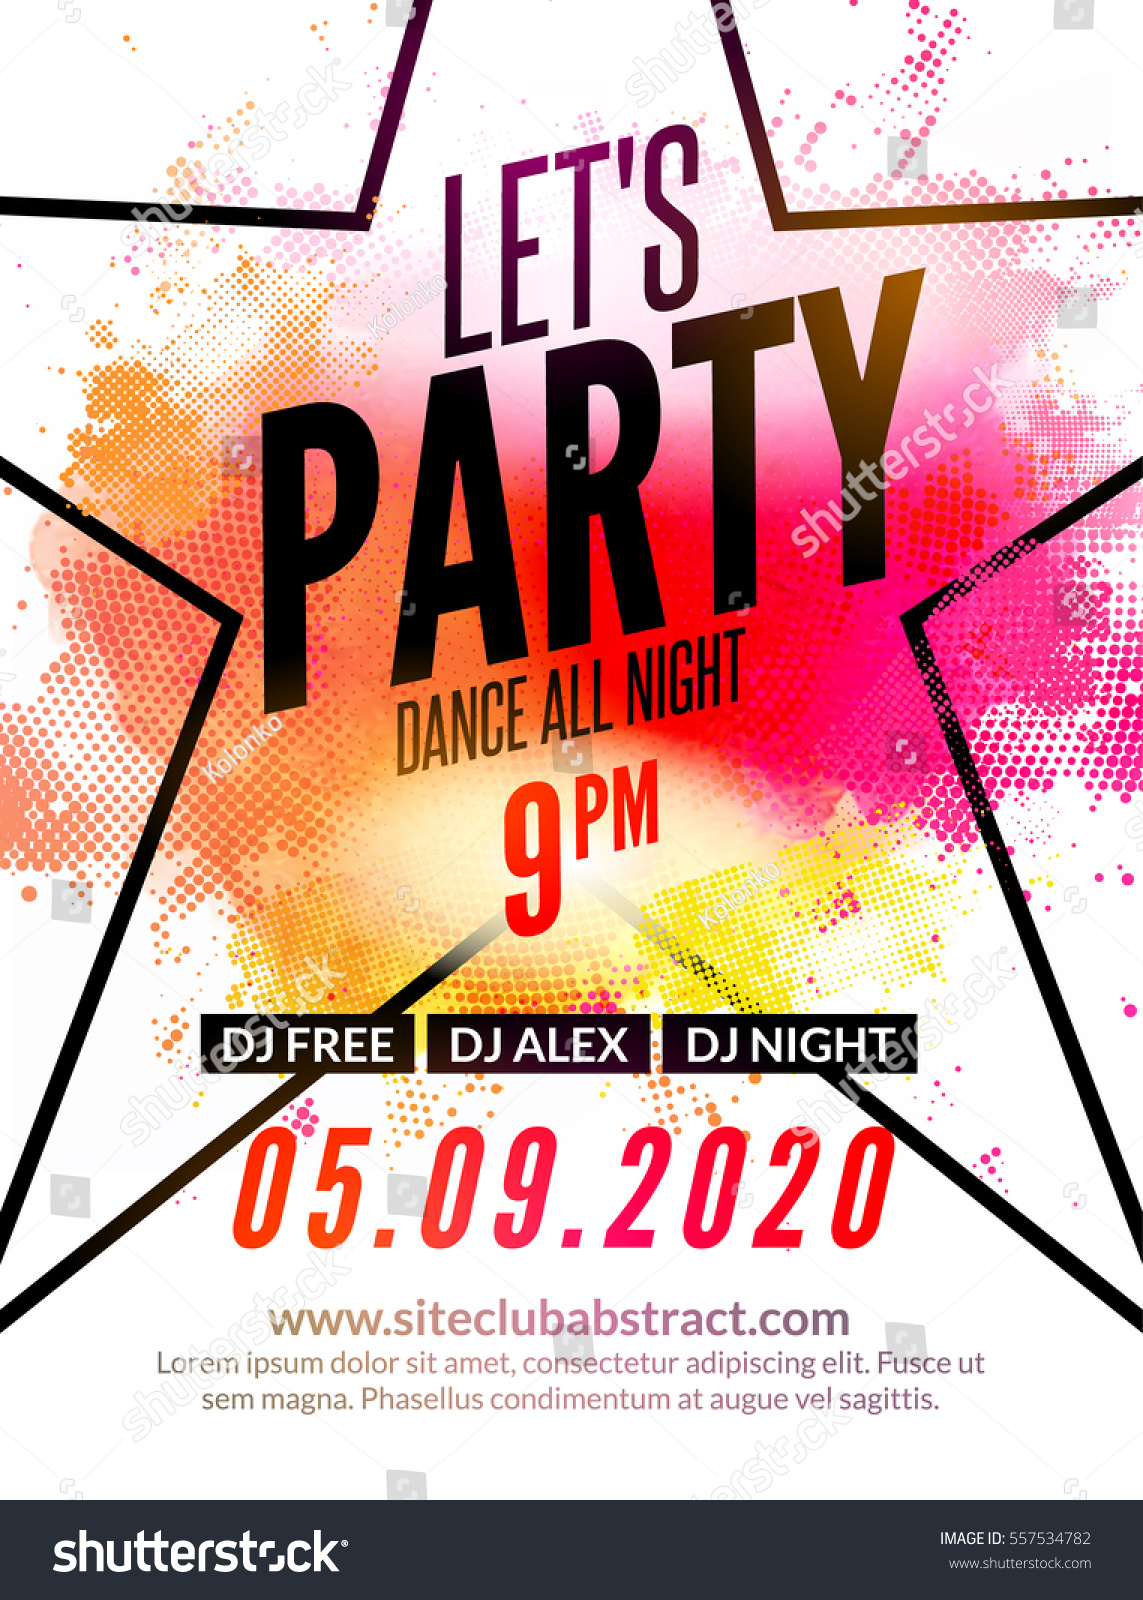 lets party design poster night club stock vector 557534782 shutterstock. Black Bedroom Furniture Sets. Home Design Ideas